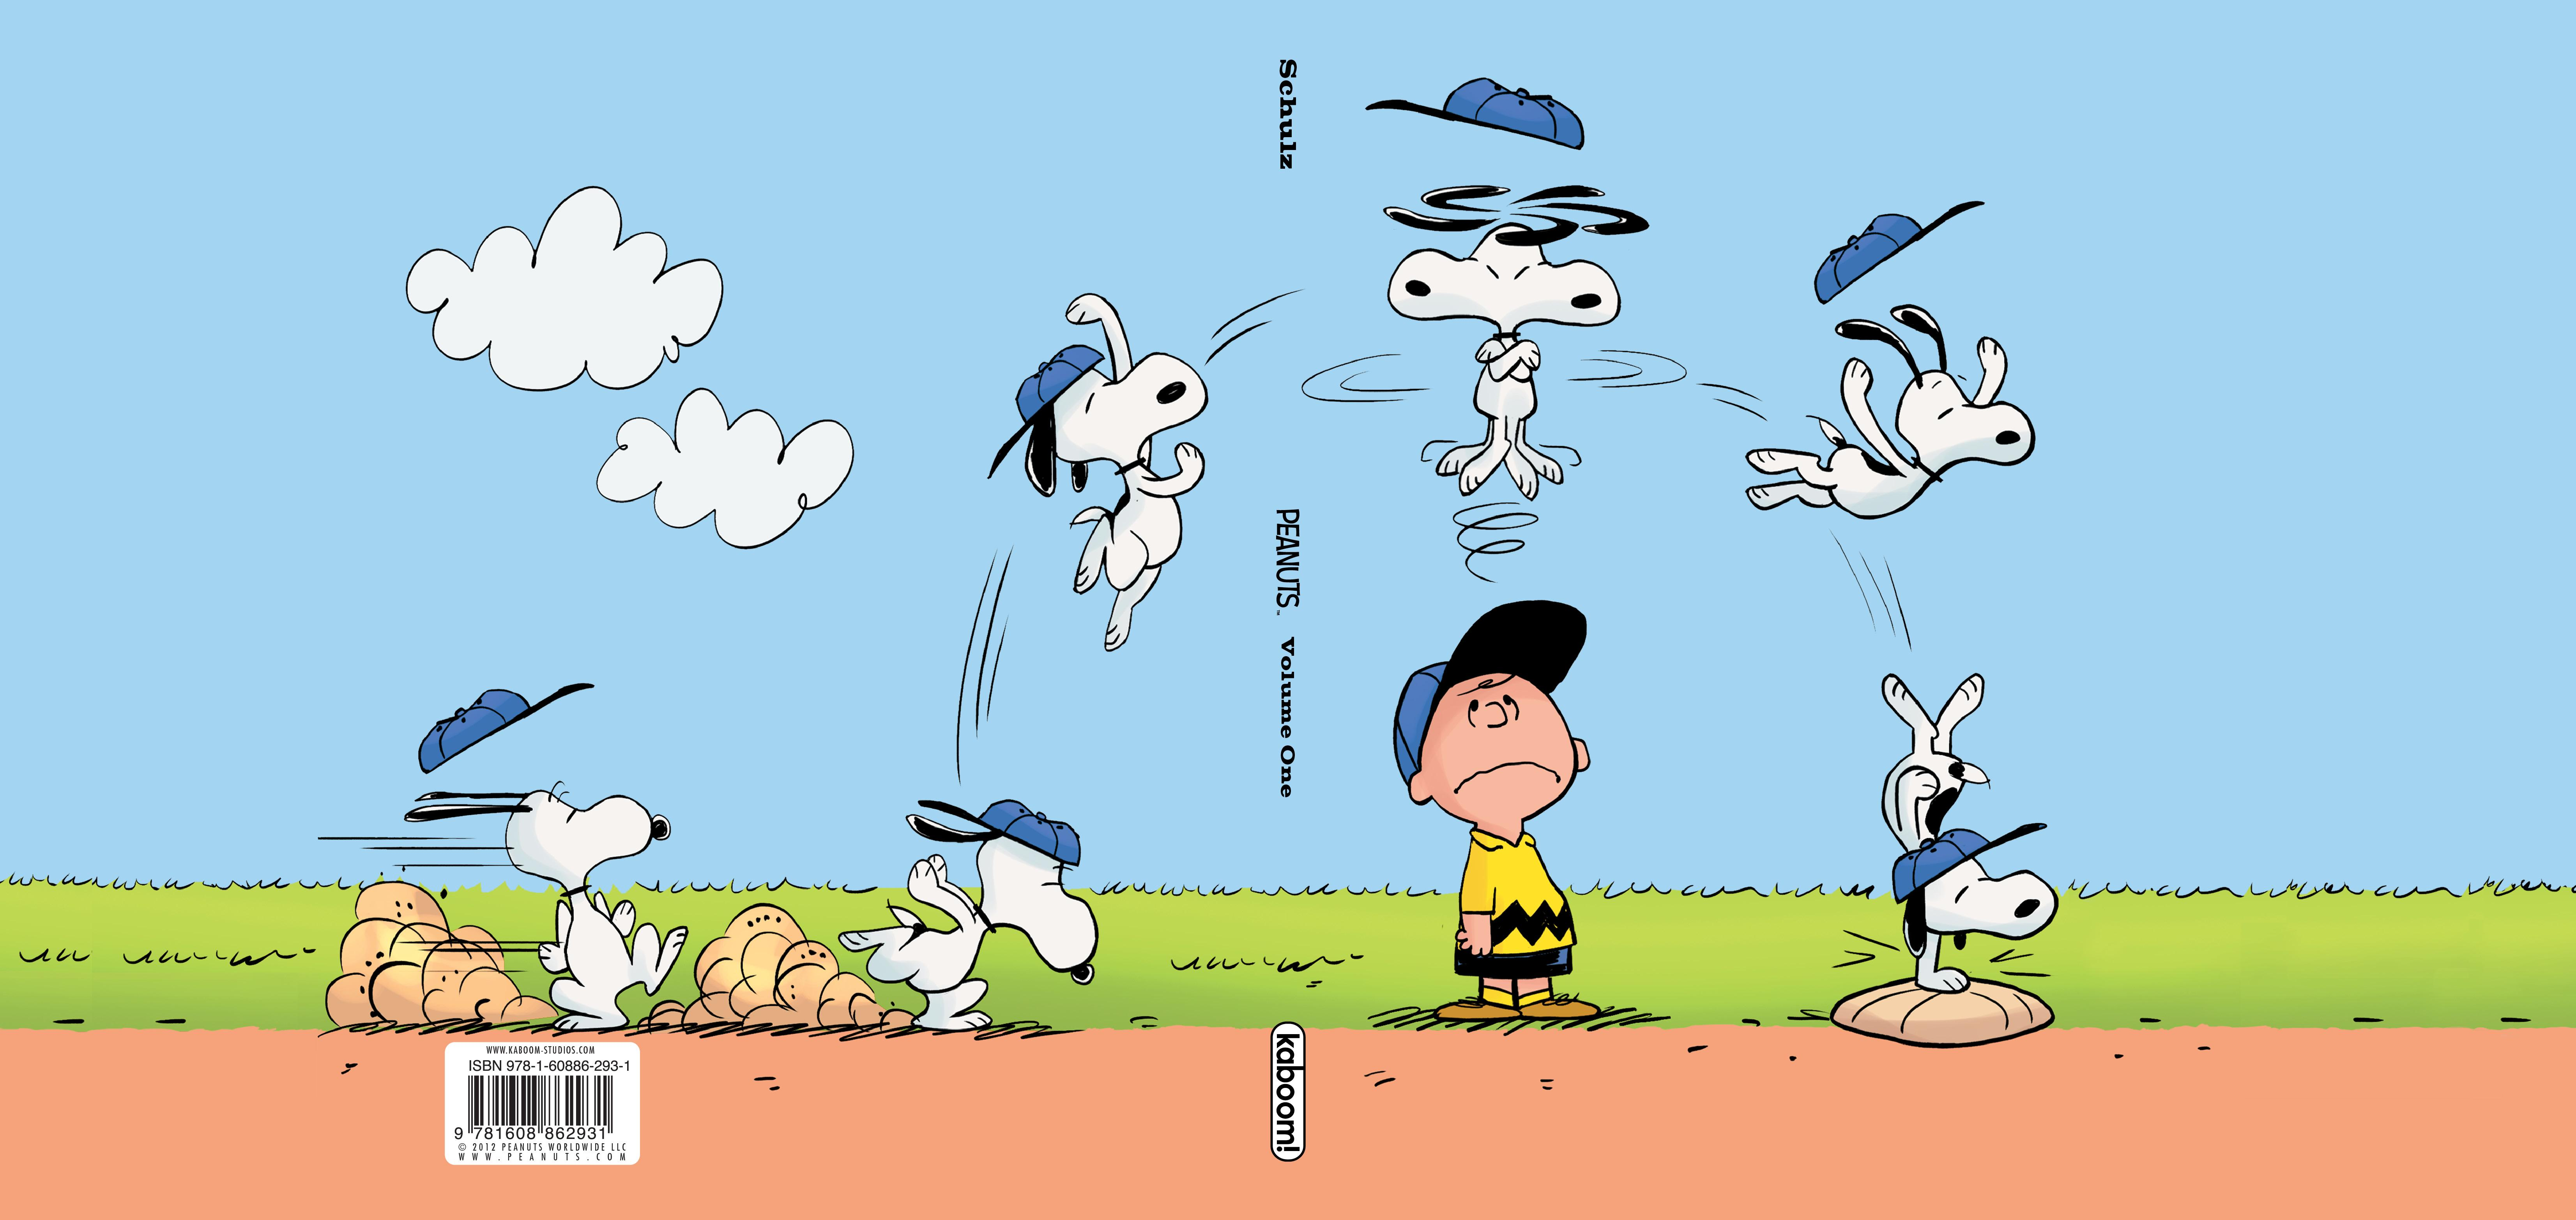 CHARLIE BROWN peanuts comics snoopy t wallpaper 6609x3131 160953 6609x3131